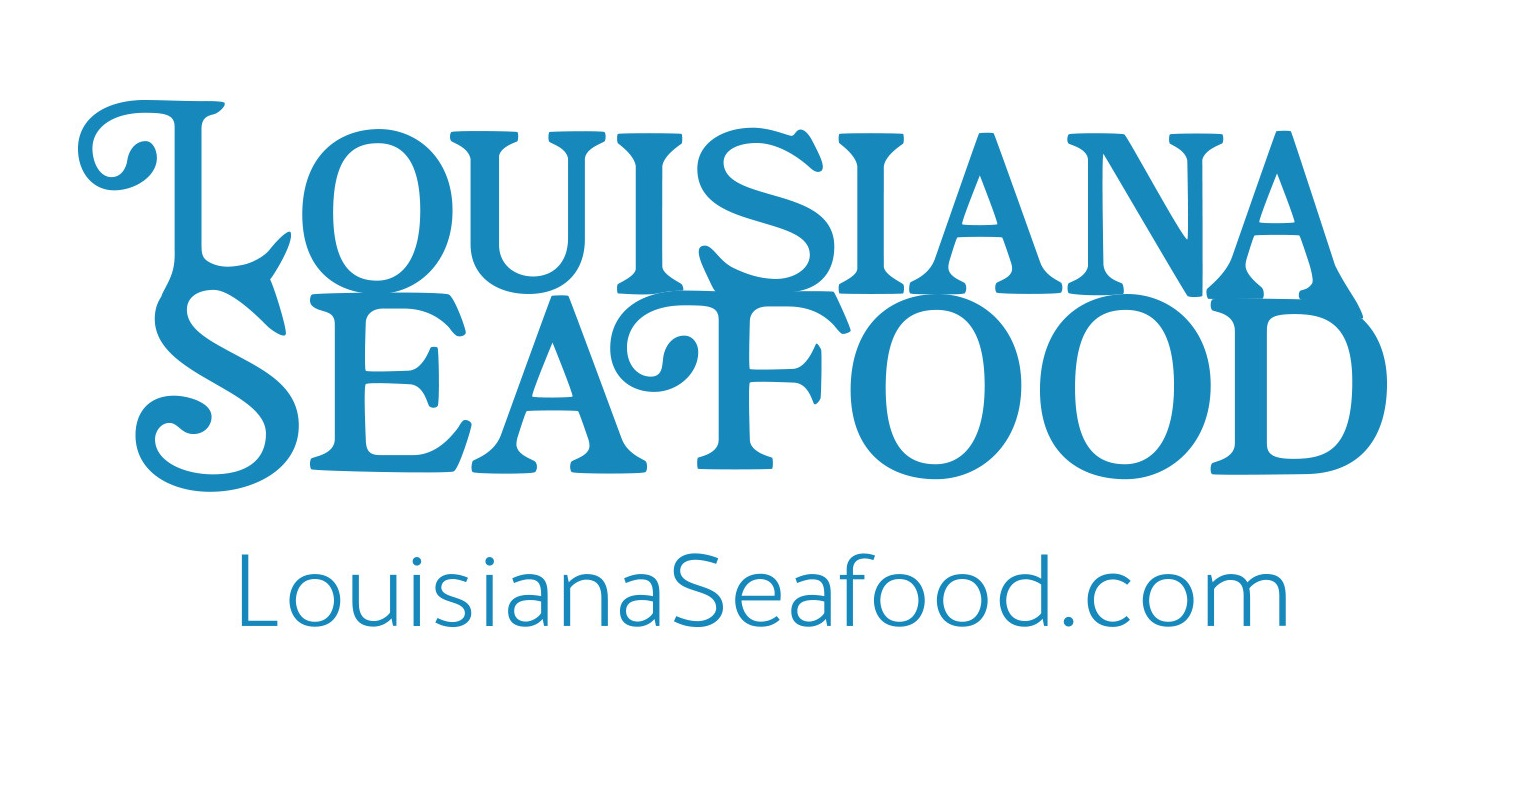 Louisiana Seafood